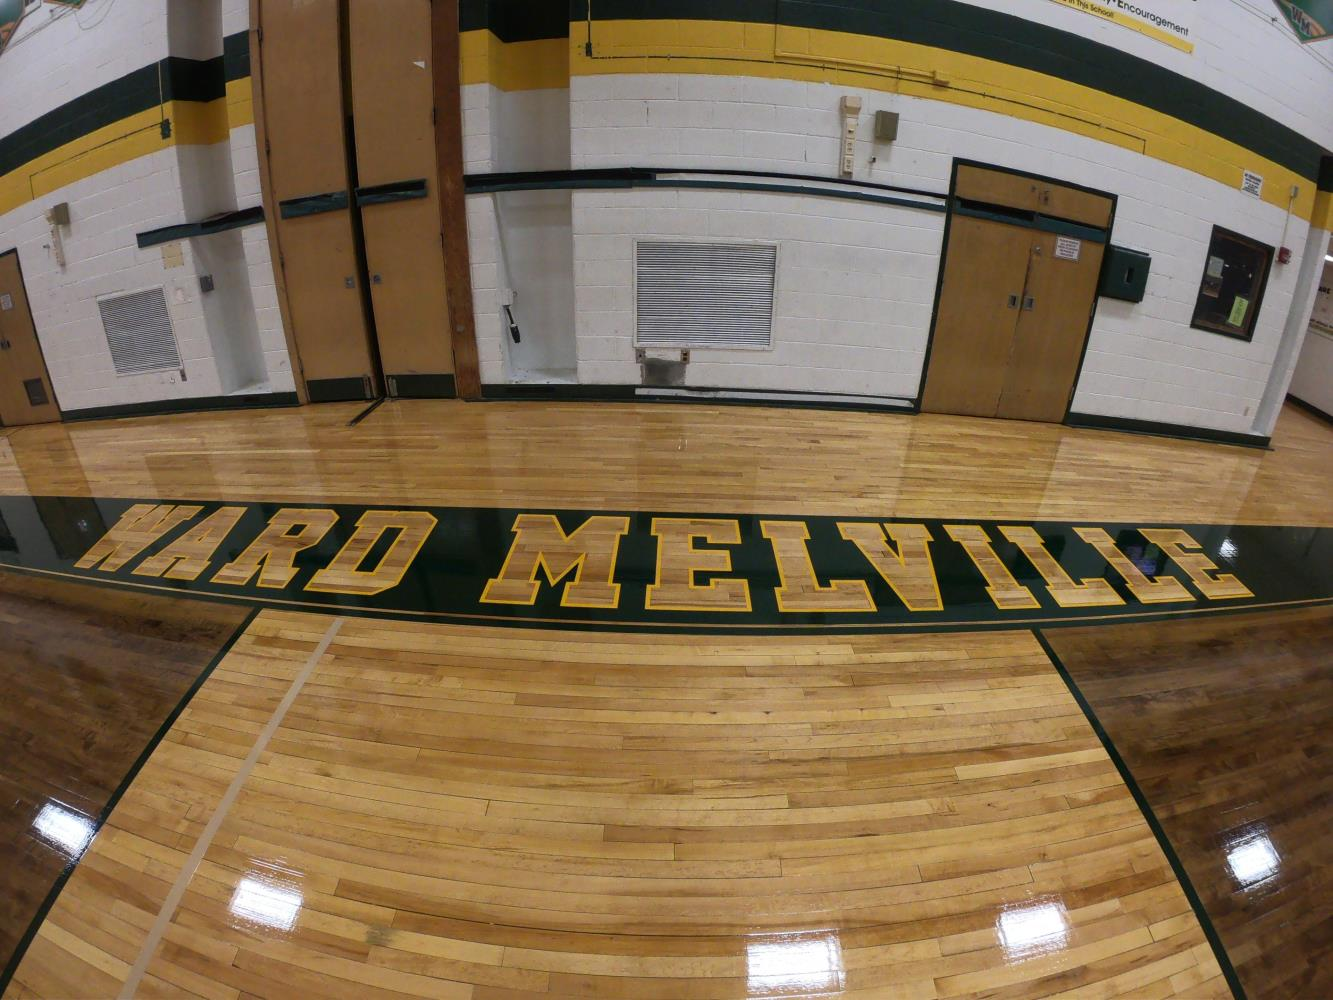 Ward Melville High School 6